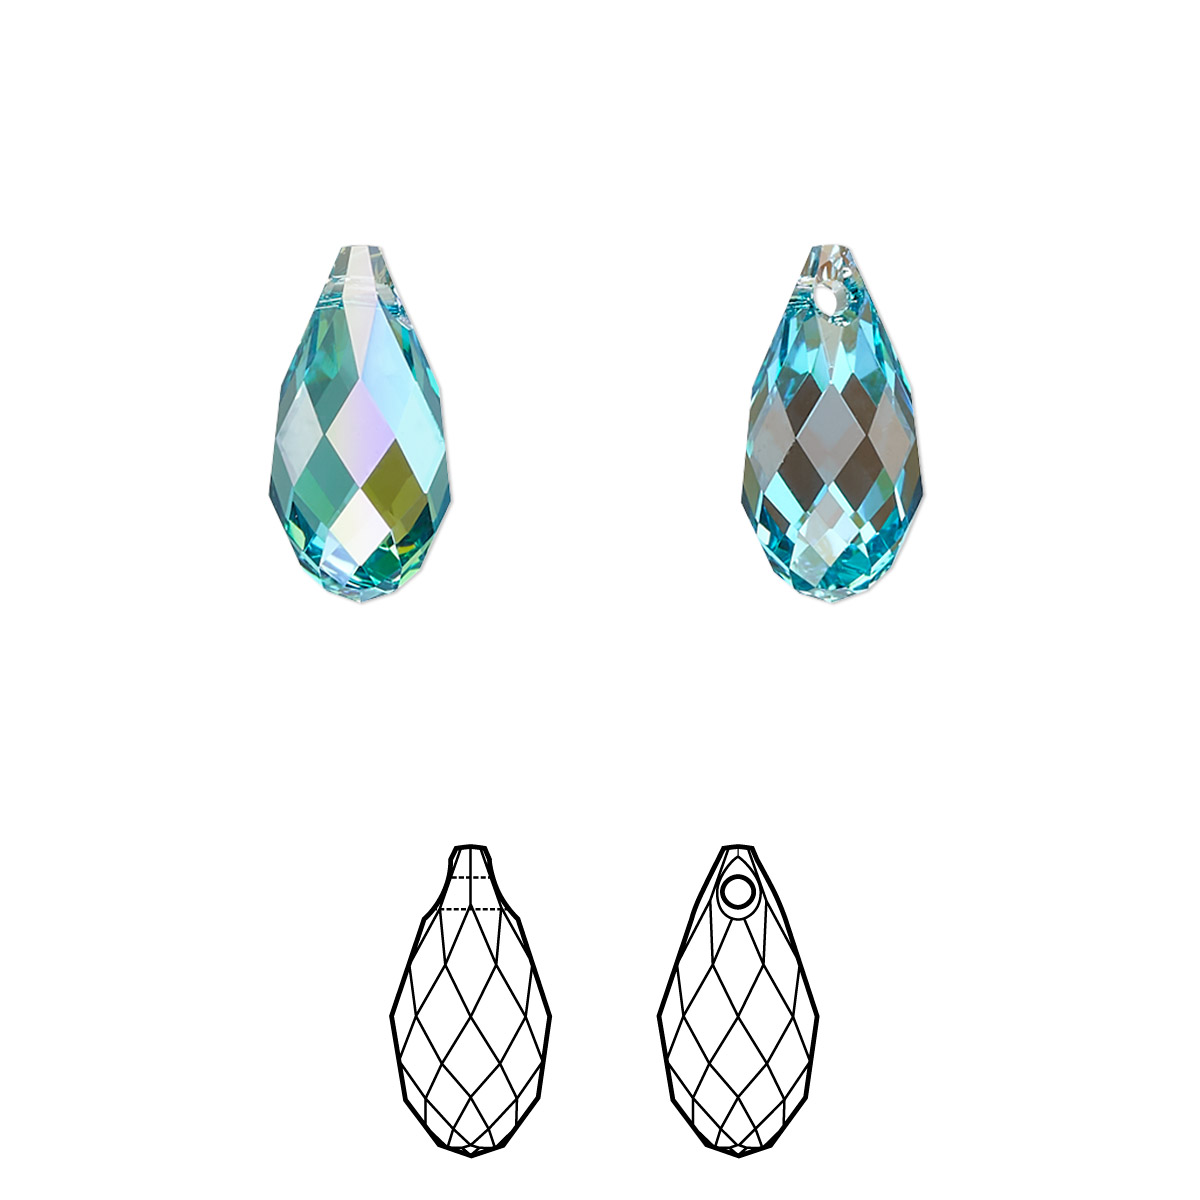 ab2f2449ad1e4 Drop, Swarovski® crystals, light turquoise glacier blue, 13x6.5mm ...